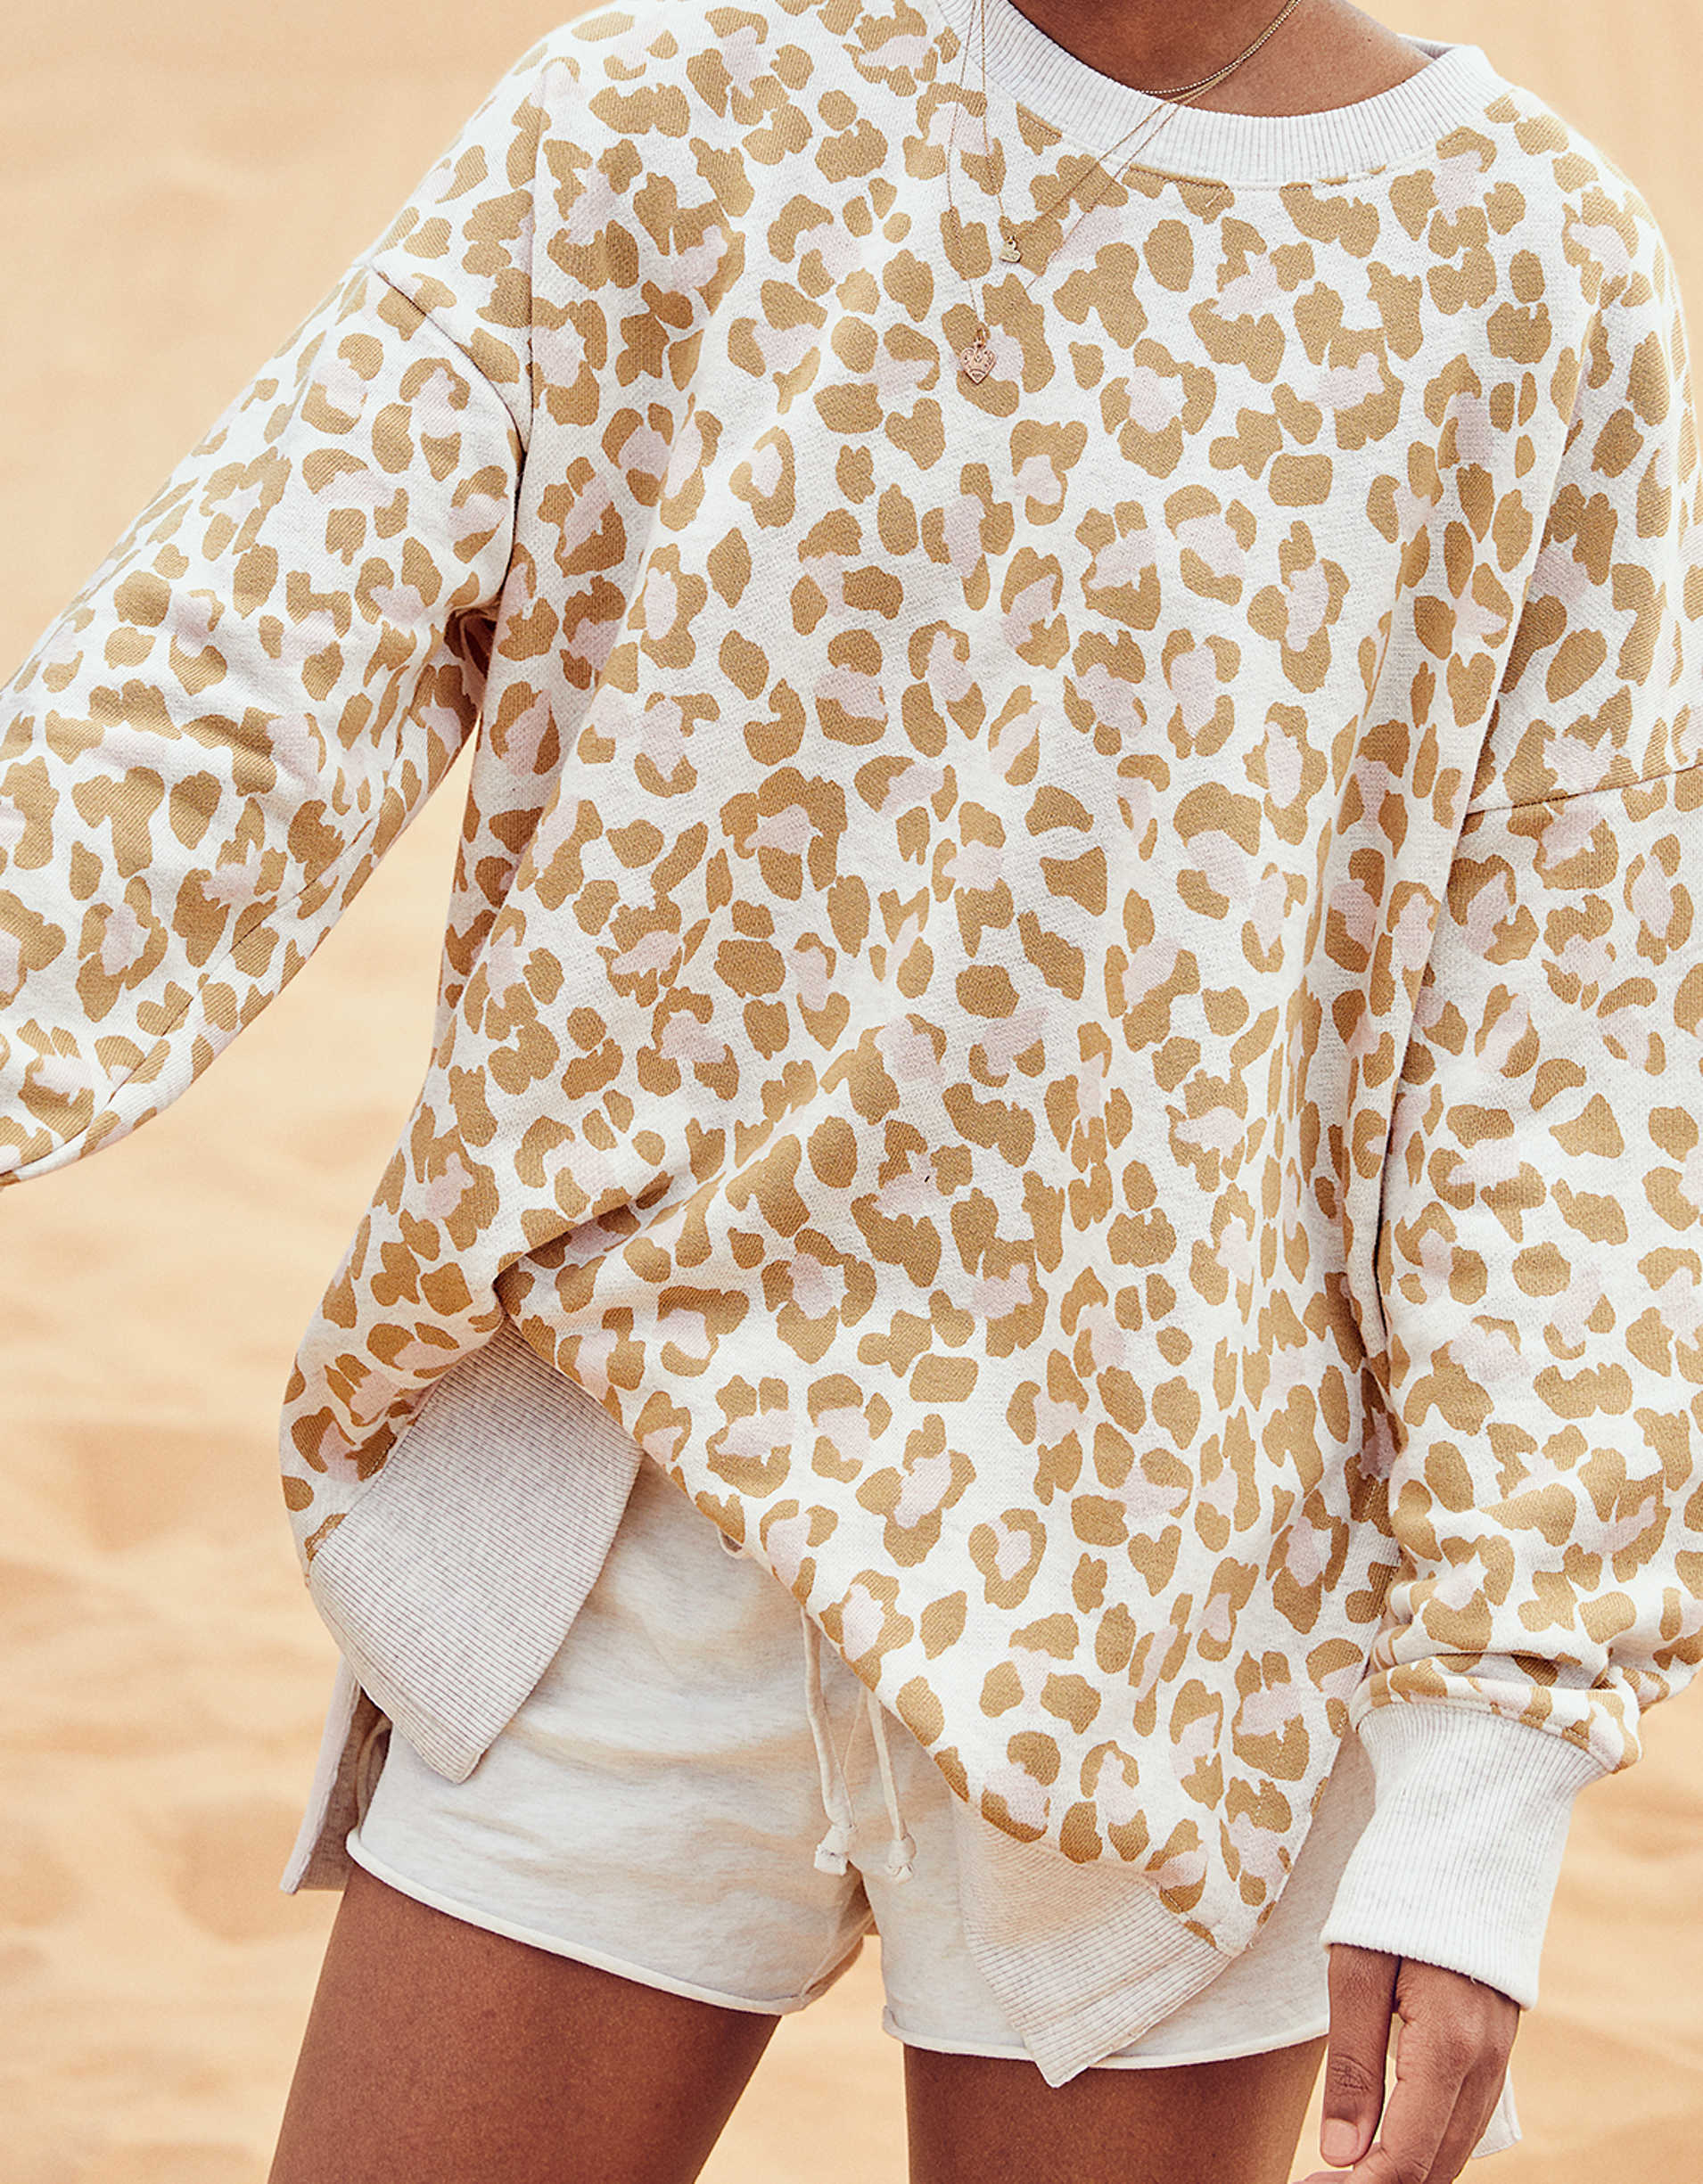 Aerie Oversized Desert Sweatshirt, 12 Adorably Chic Sweatshirts You'll Want In Your Closet